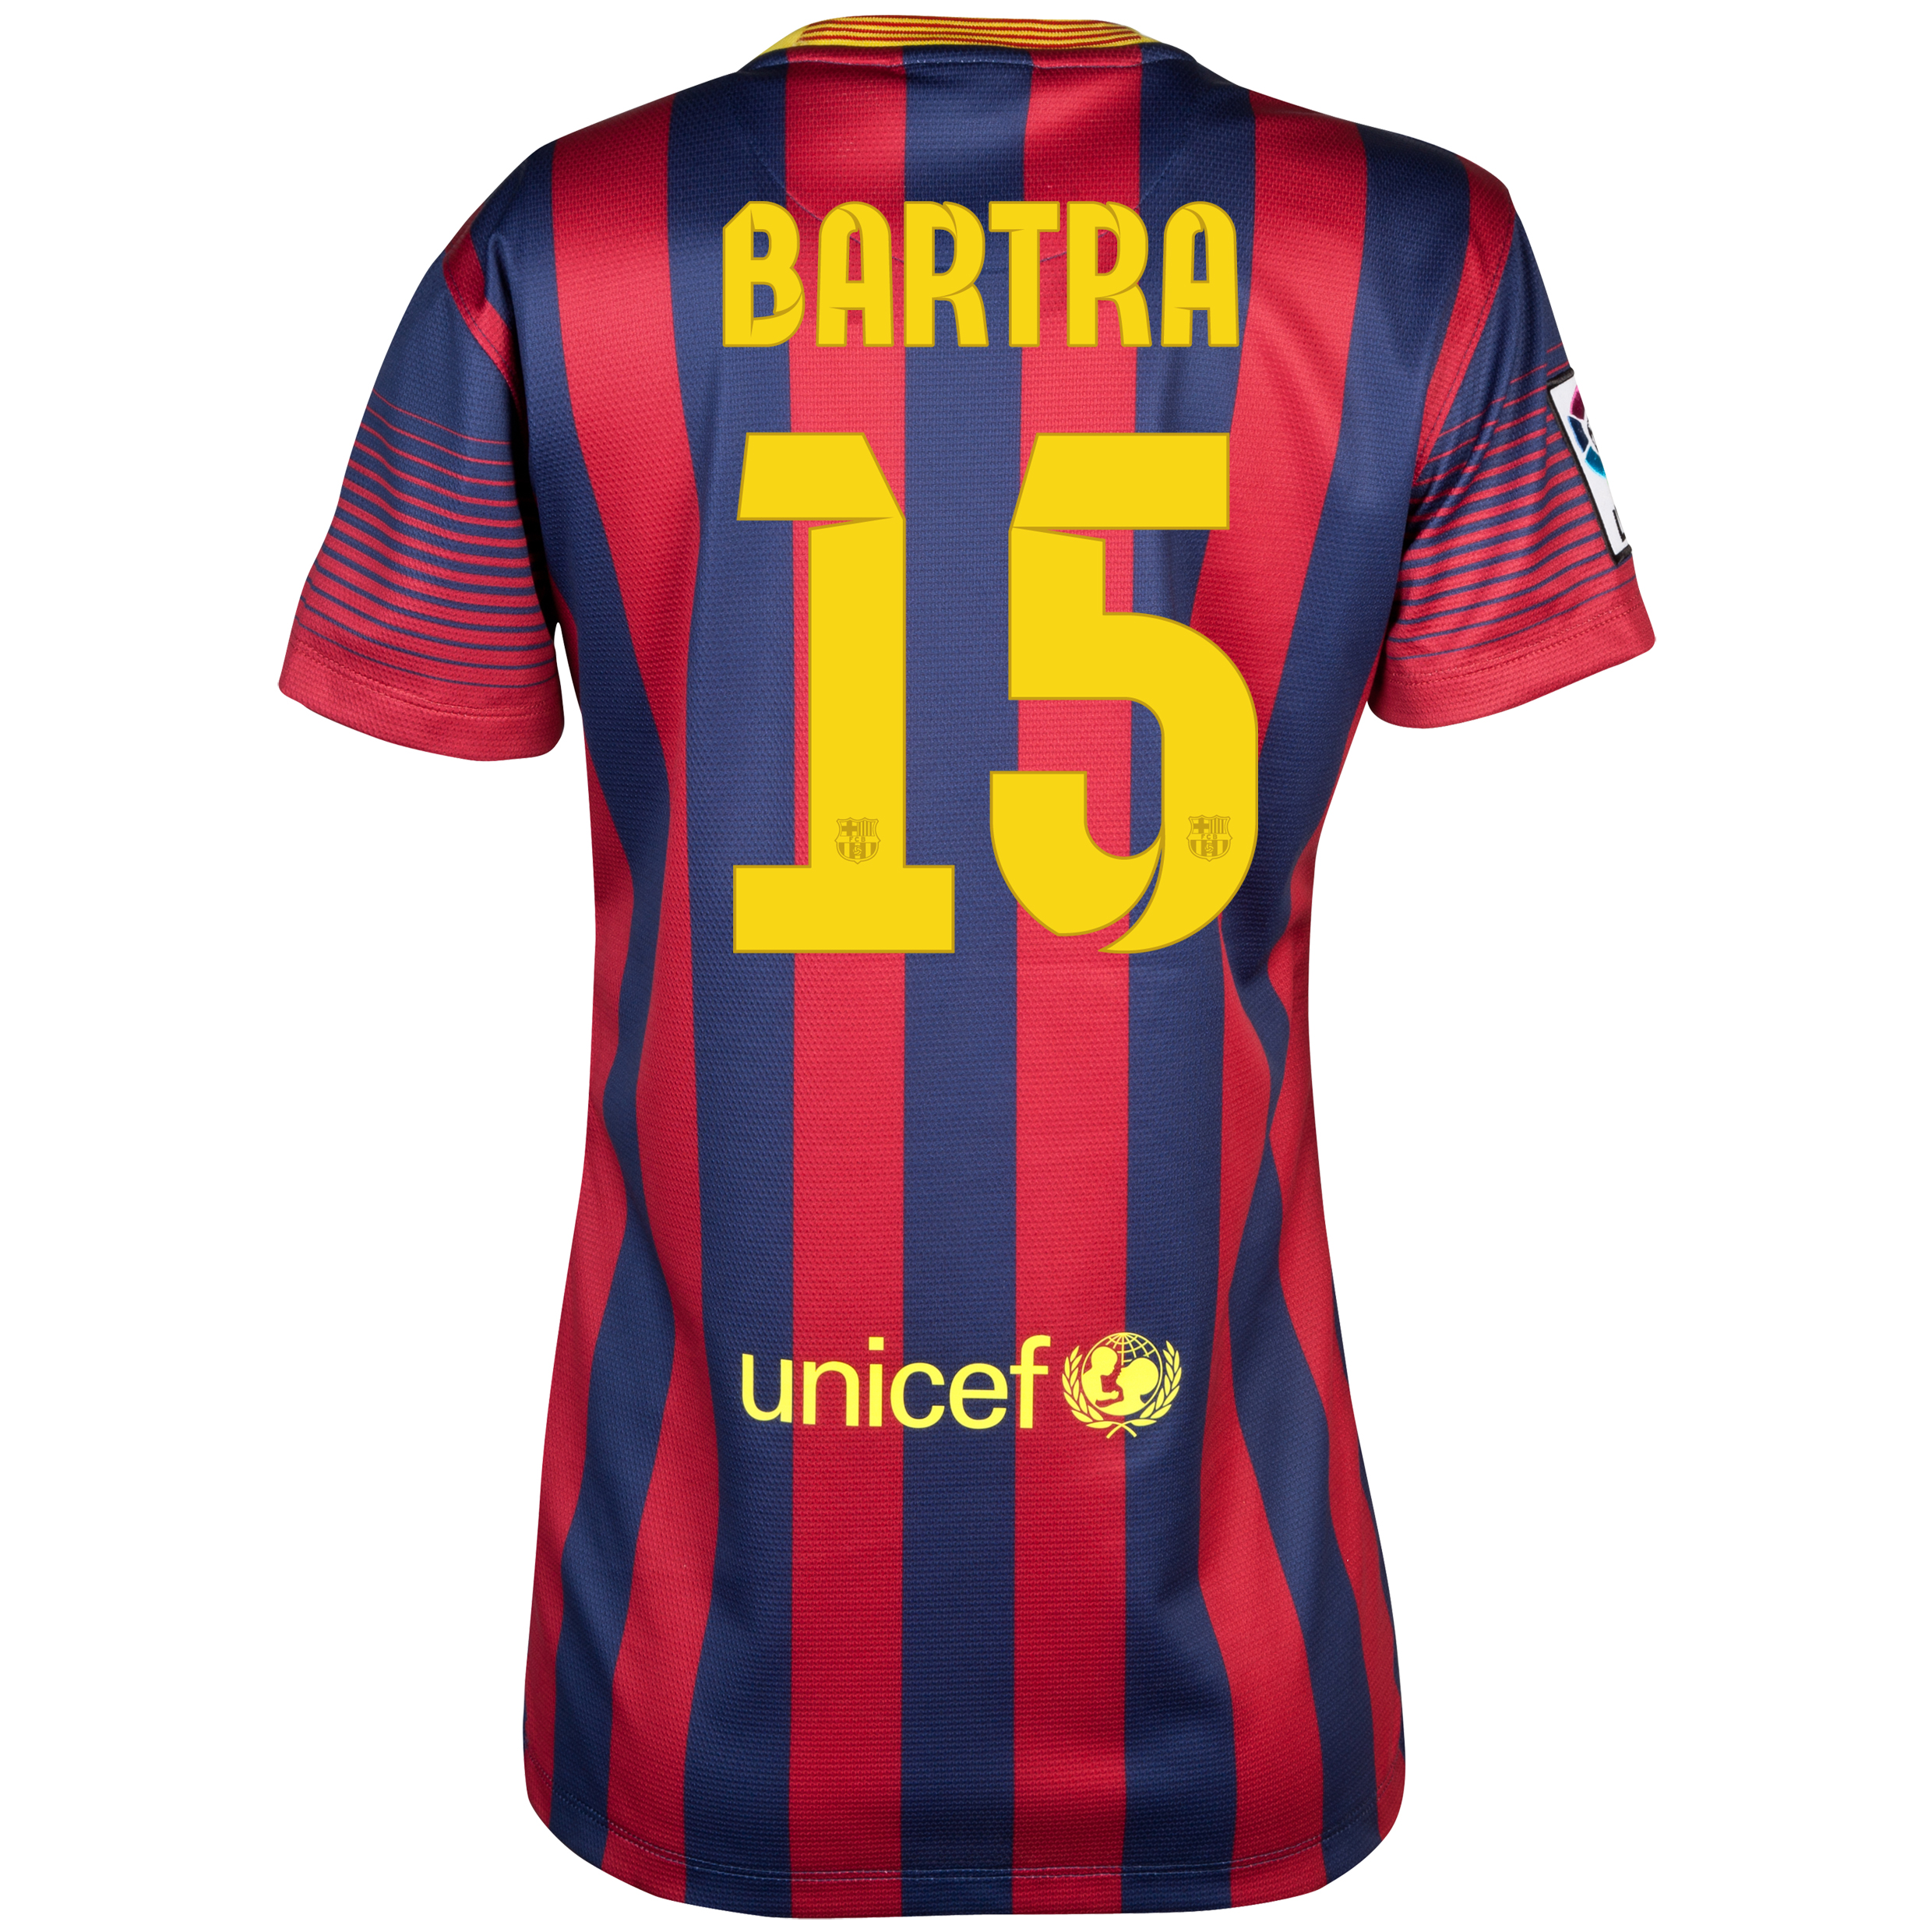 Barcelona Home Shirt 2013/14 - Womens with Bartra 15 printing